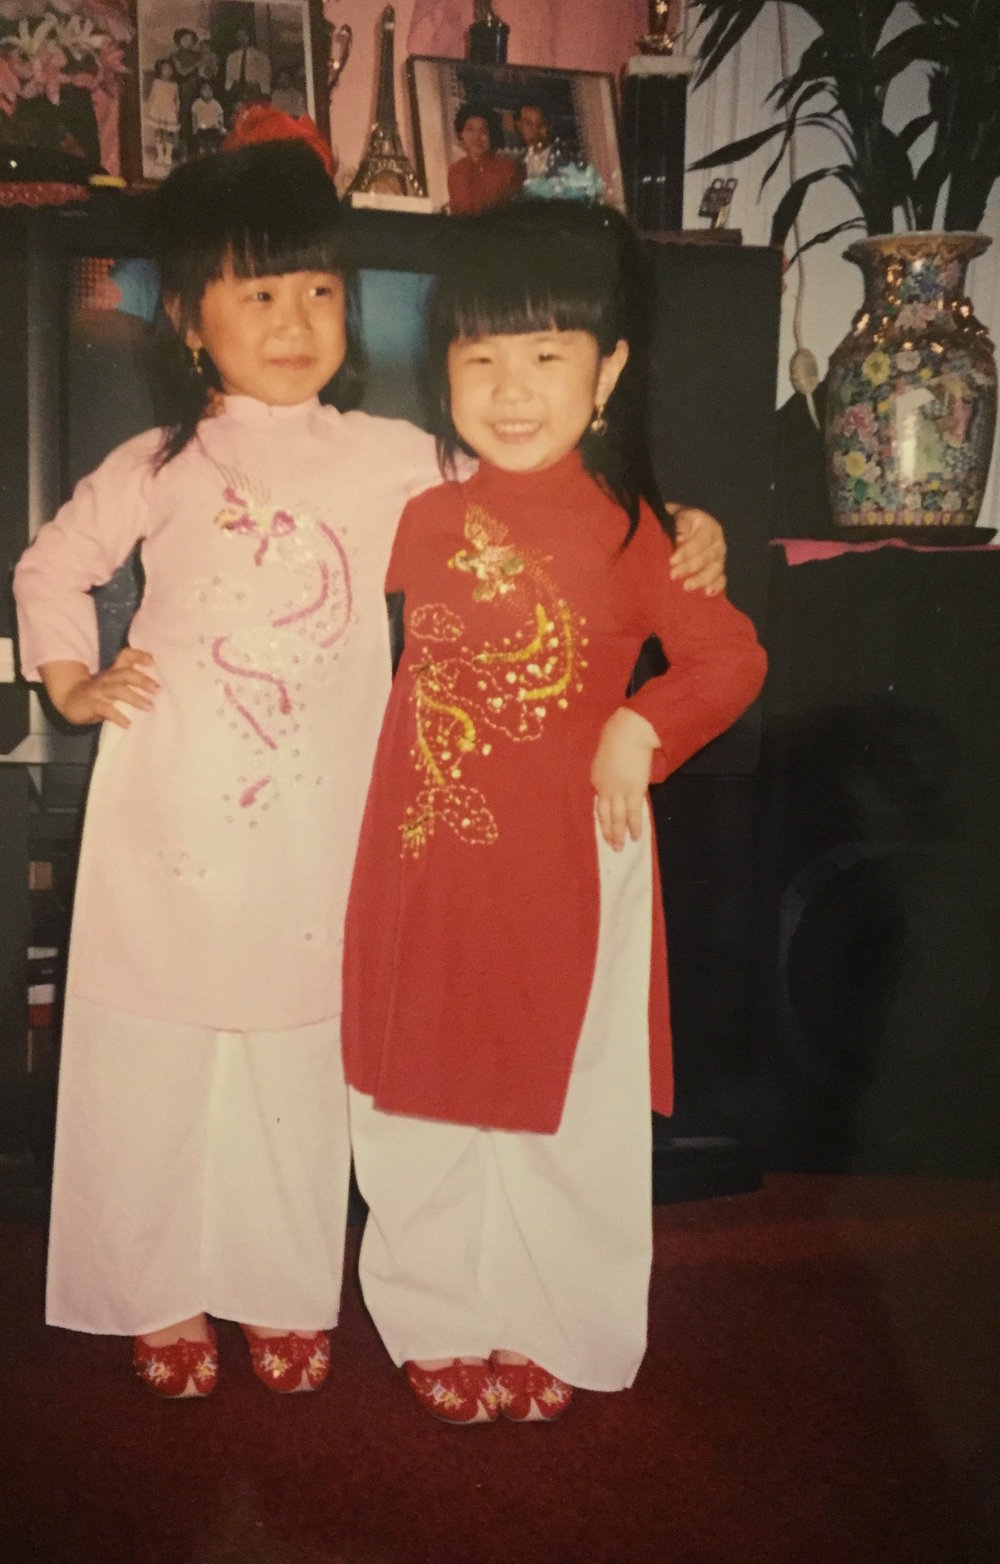 My sister and I are both wearing an áo dài, traditional Vietnamese attire.